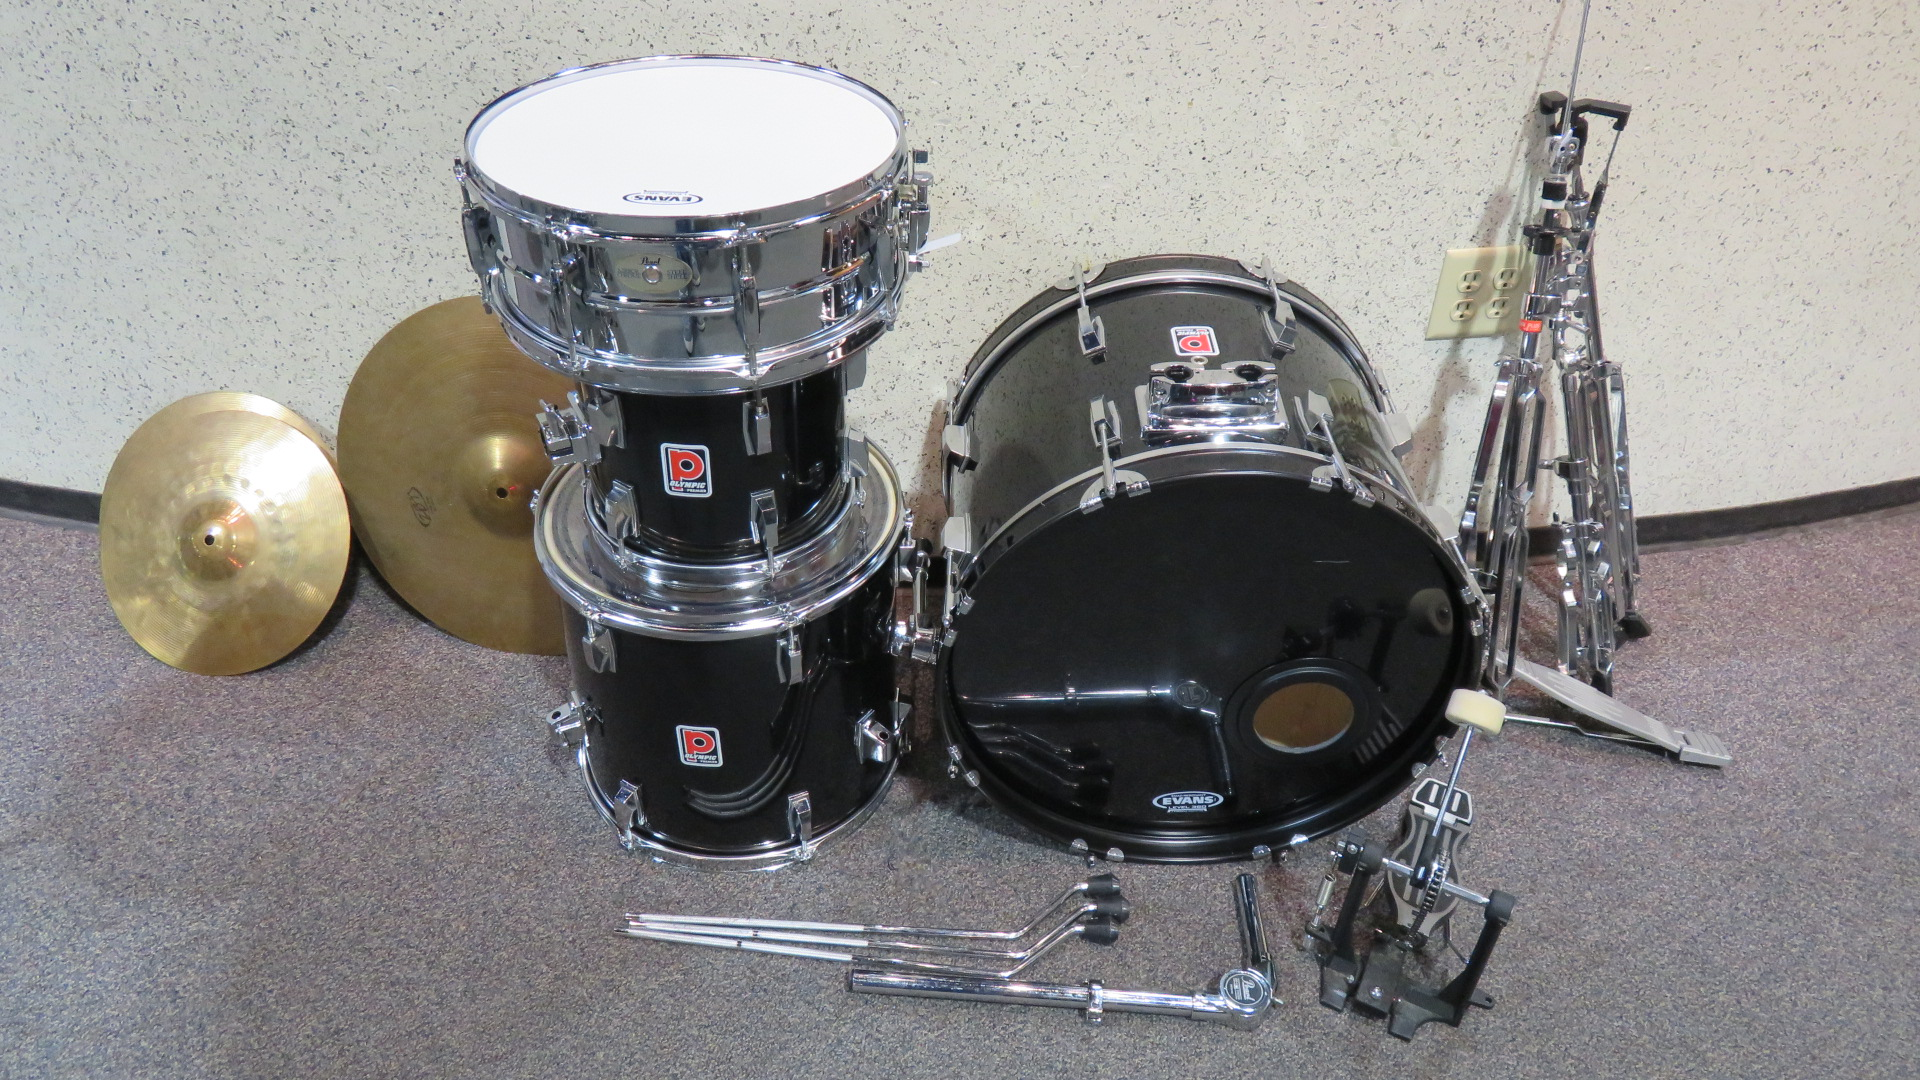 Premier - Olympic 4 Piece Drumkit with Cymbals and Stands